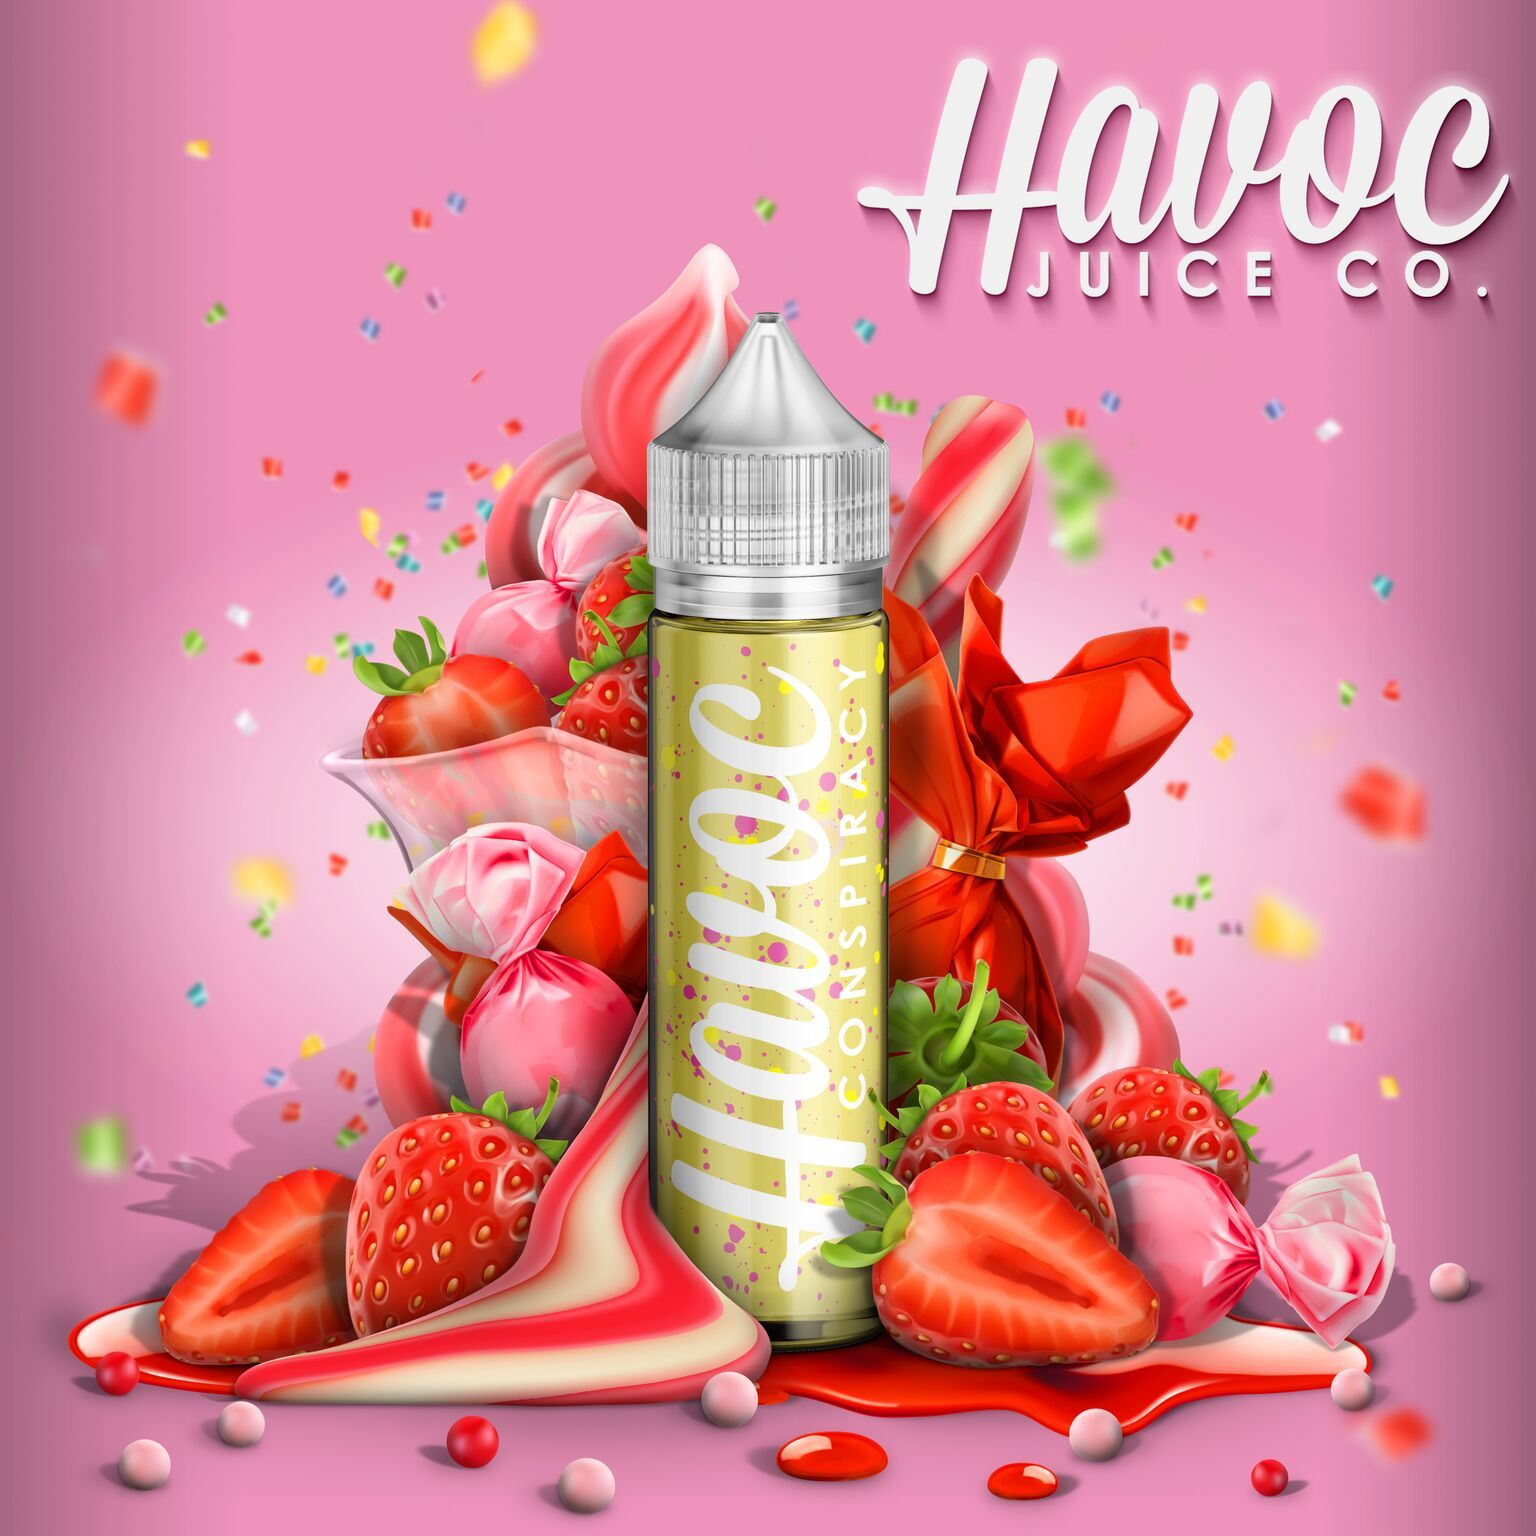 Havoc Juice Firestorm E-Liquid Review